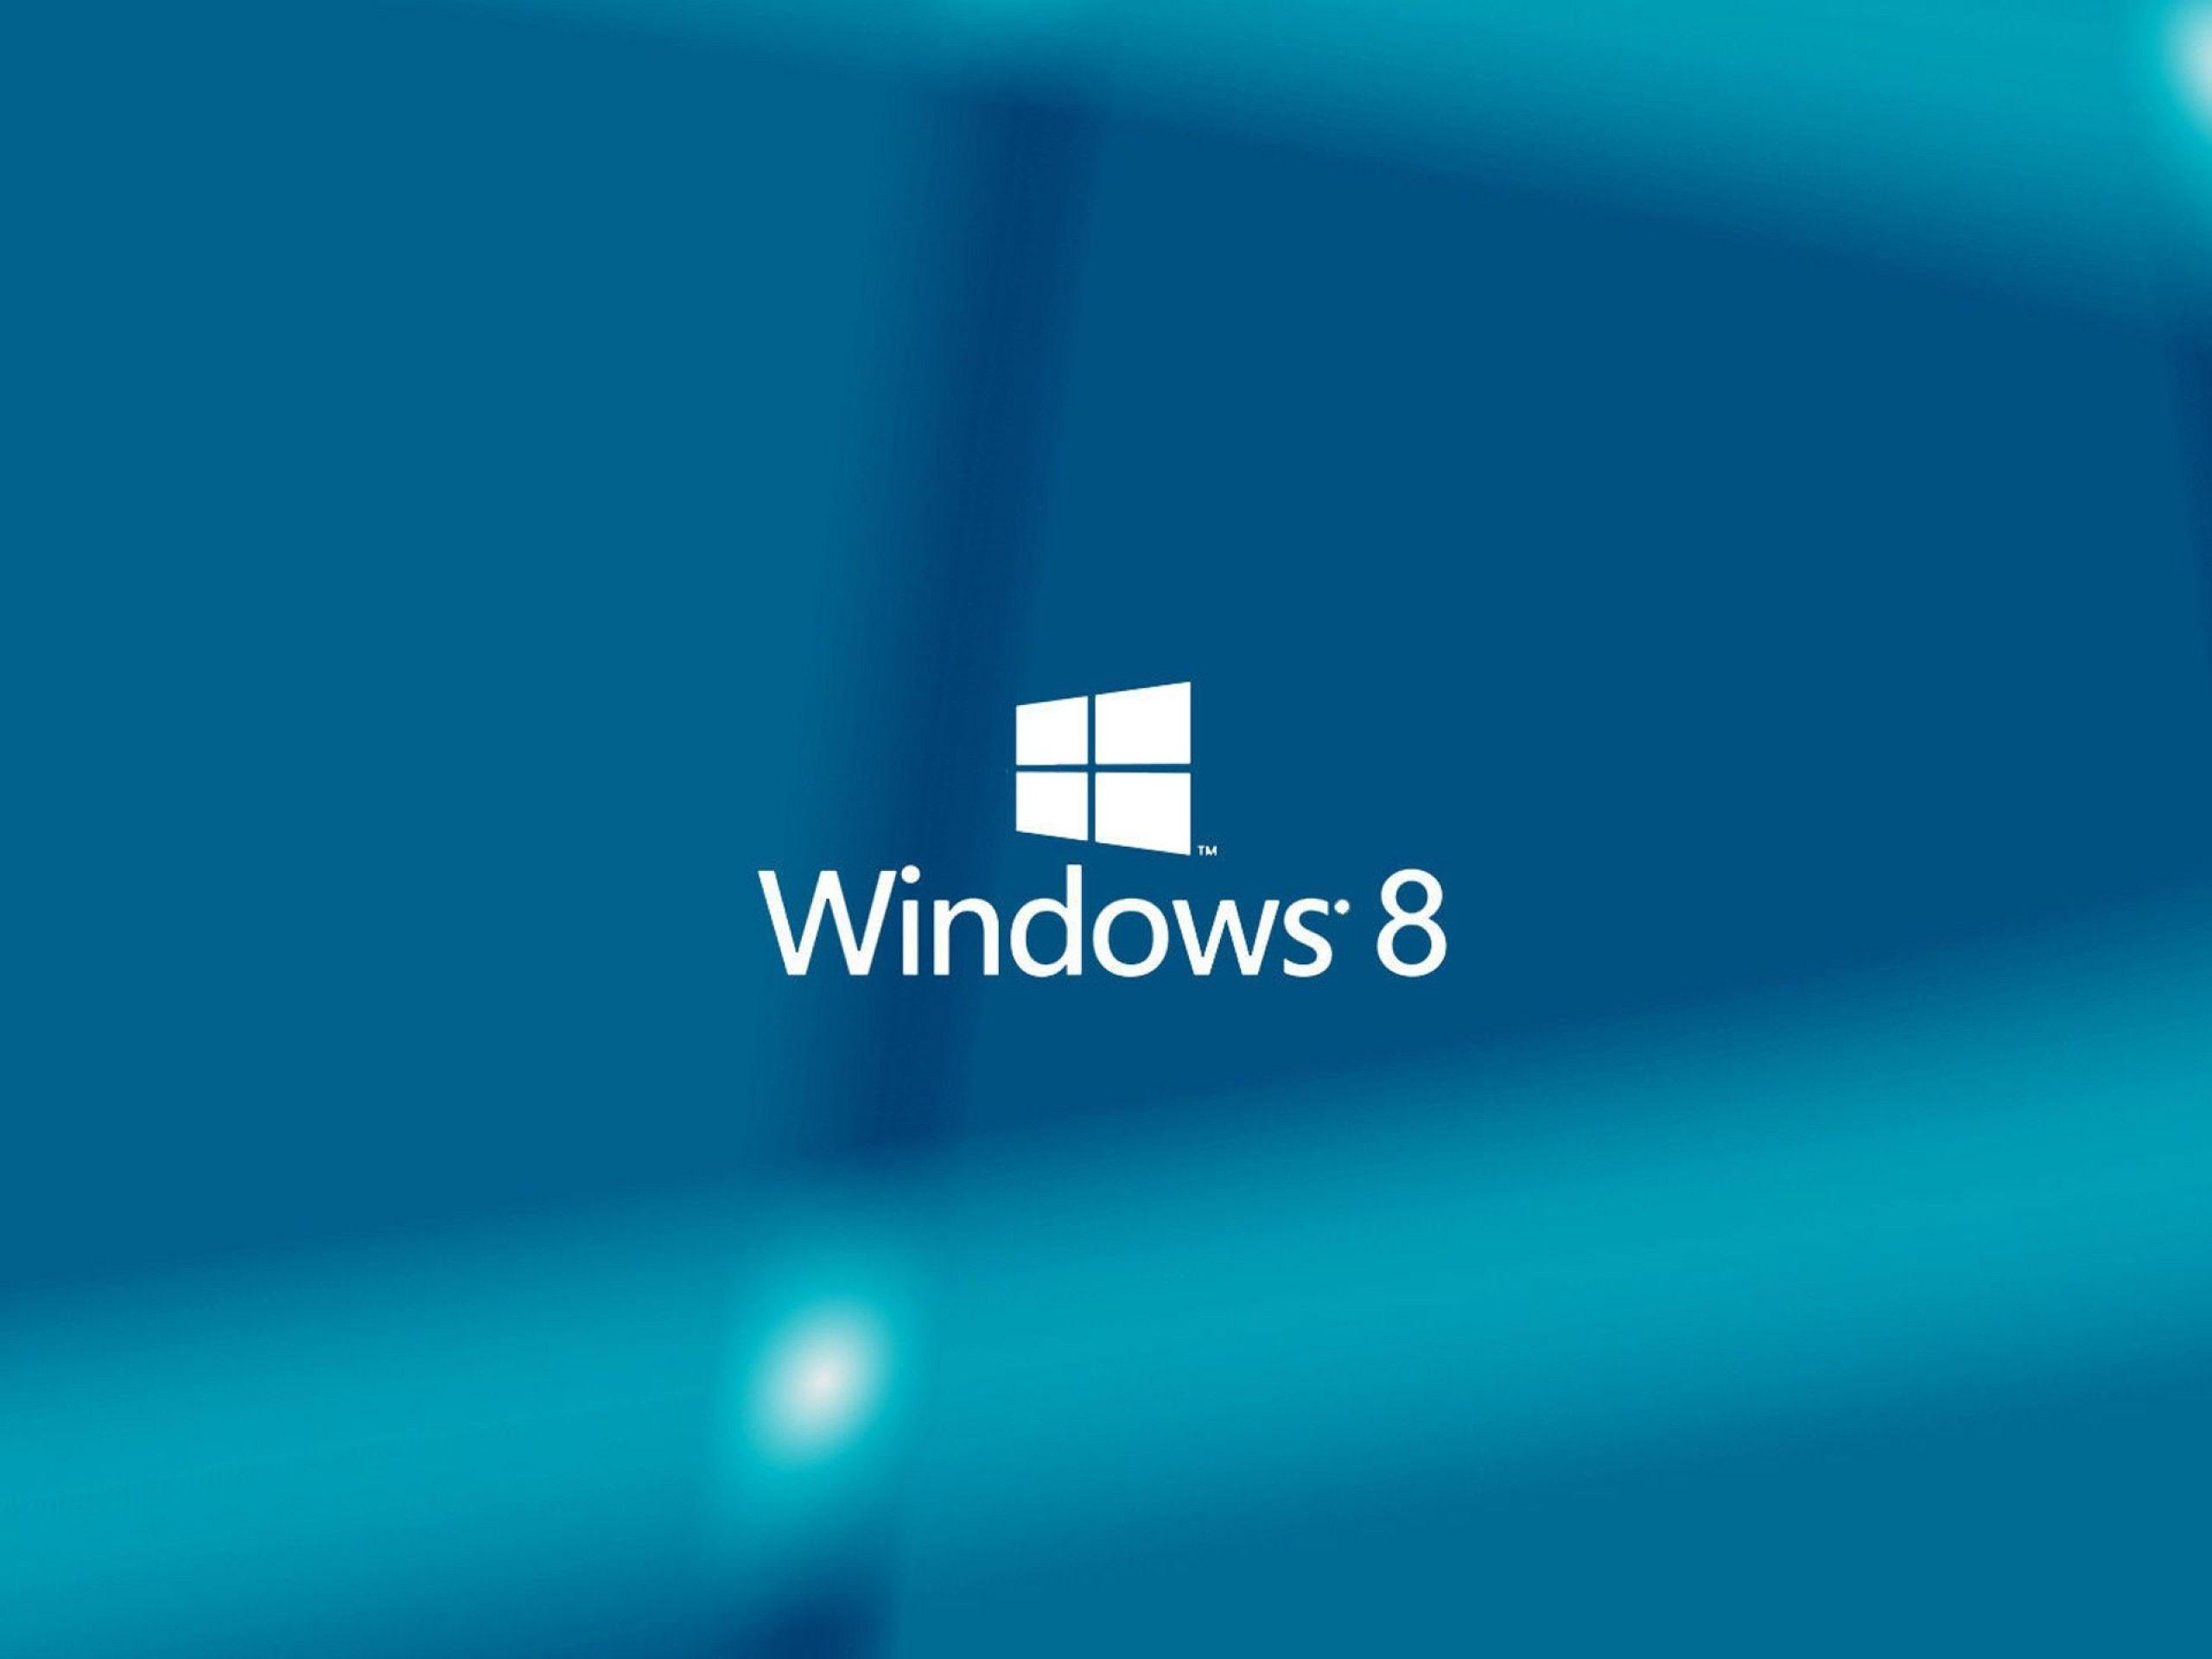 Official Windows 8 Wallpapers 98 183902 Image HD Wallpapers